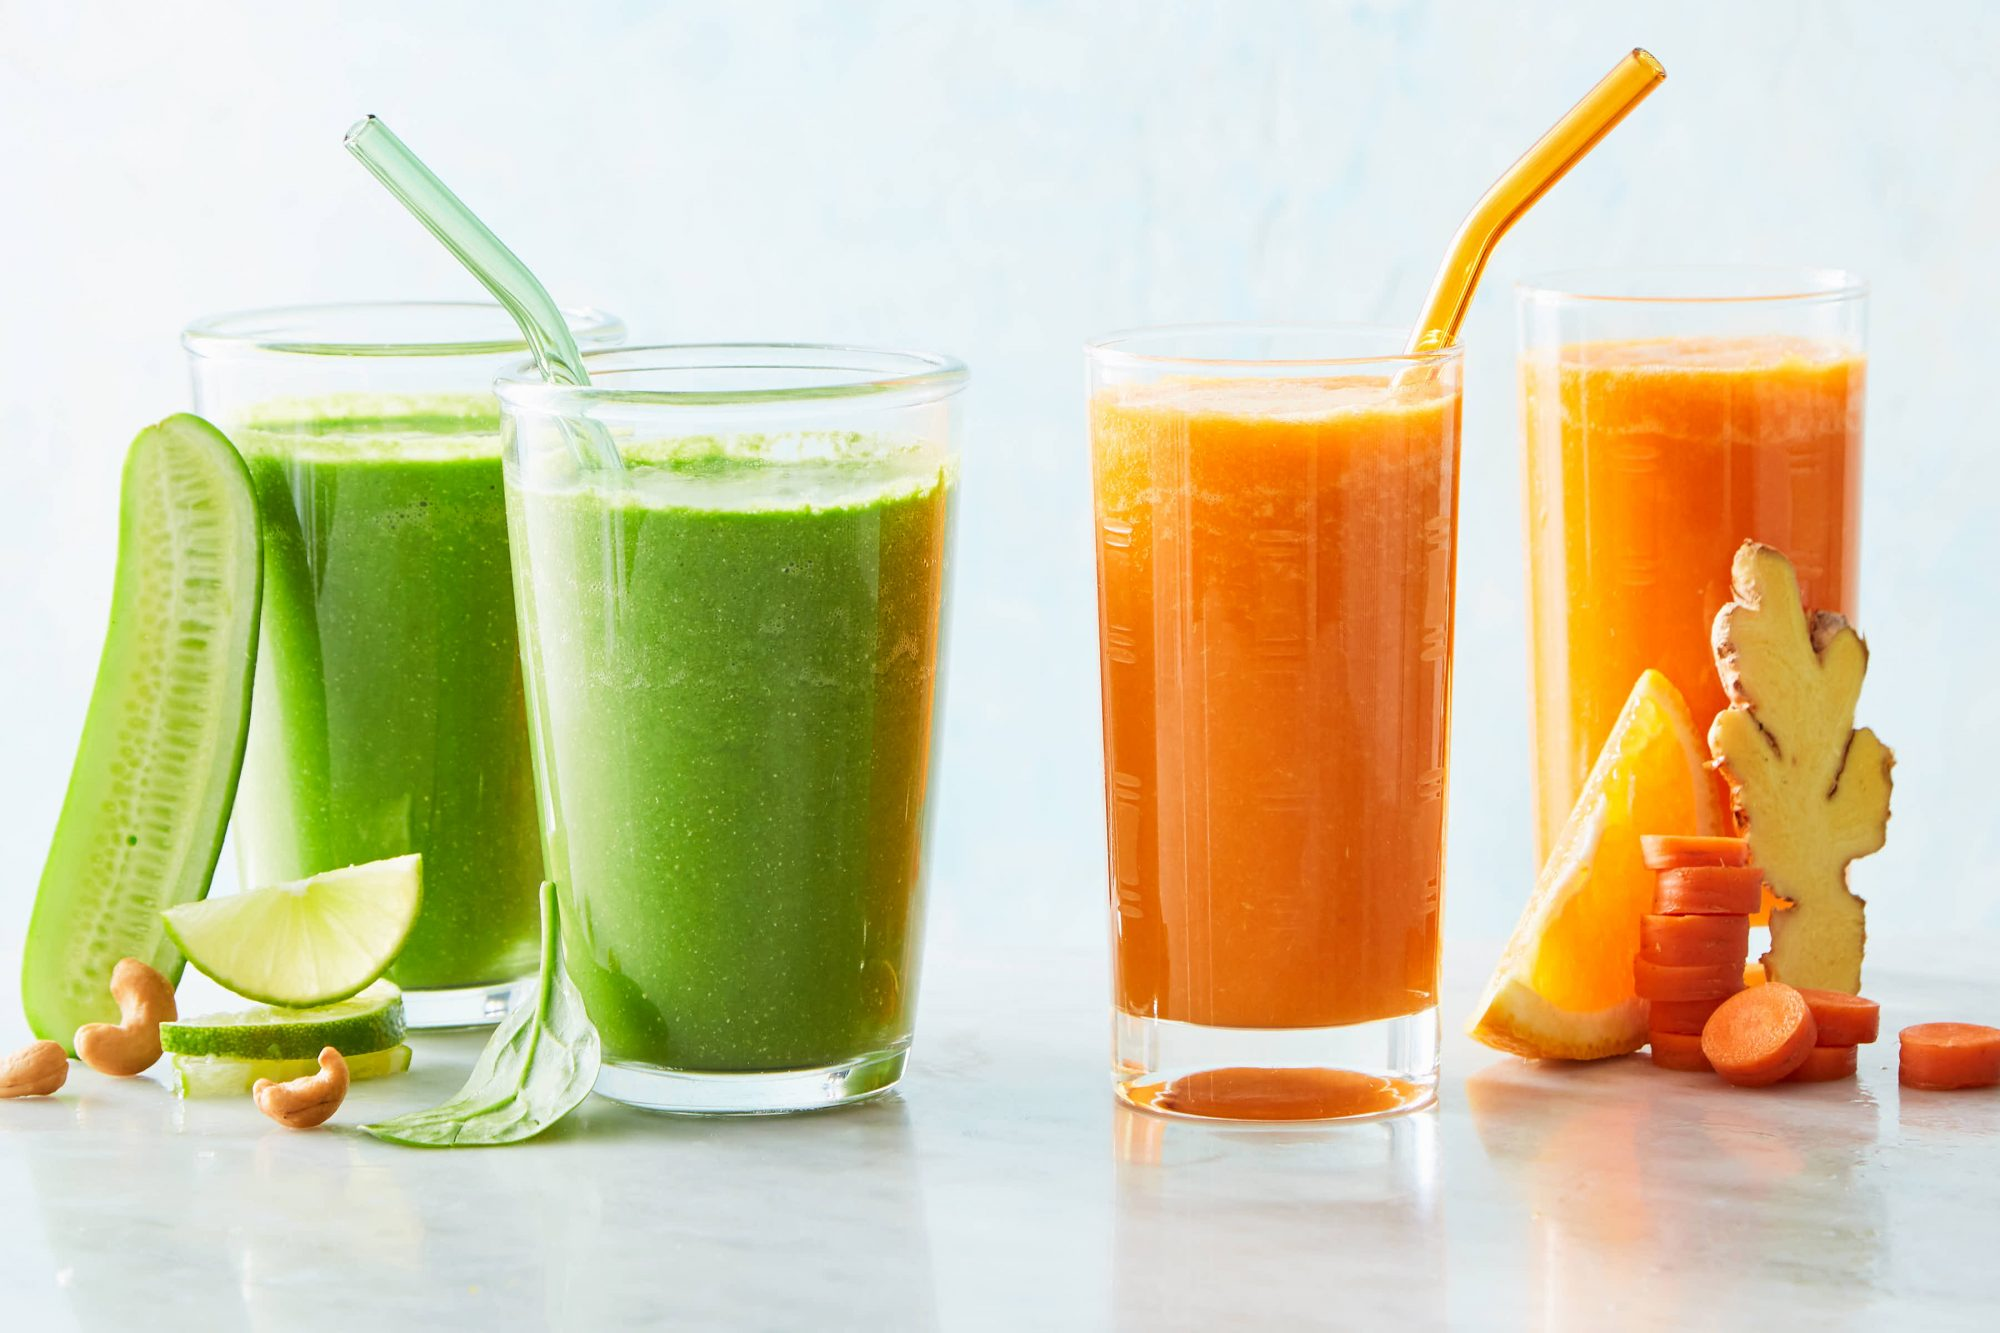 green and orange smoothies from Marley Spoon